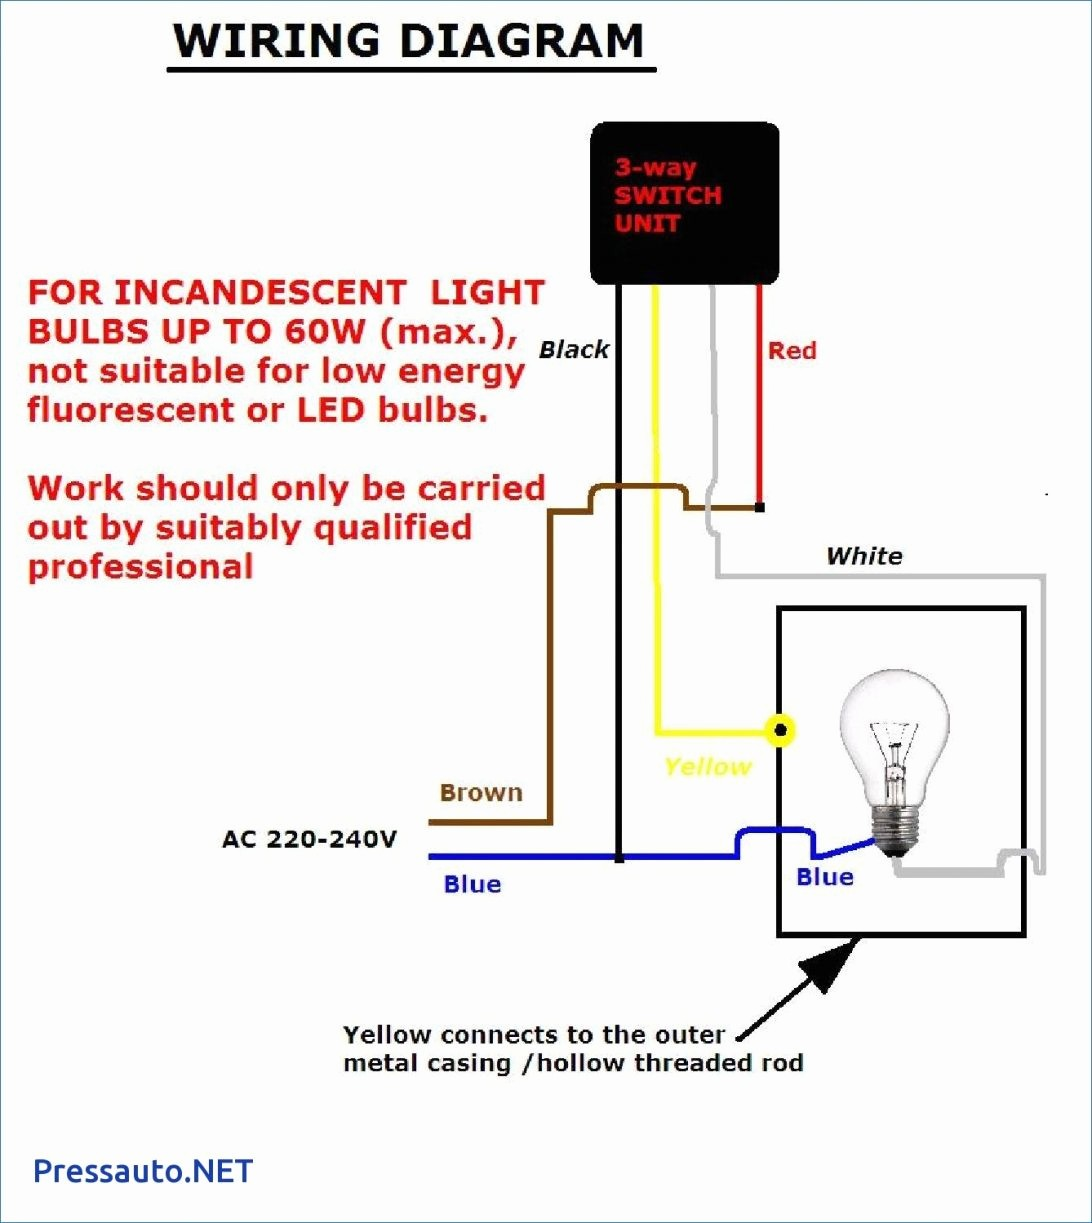 Lamp Wiring Diagram Lovely 3 Way Switch Wiring Diagram for A Table Lamp Free Fluorescent Light